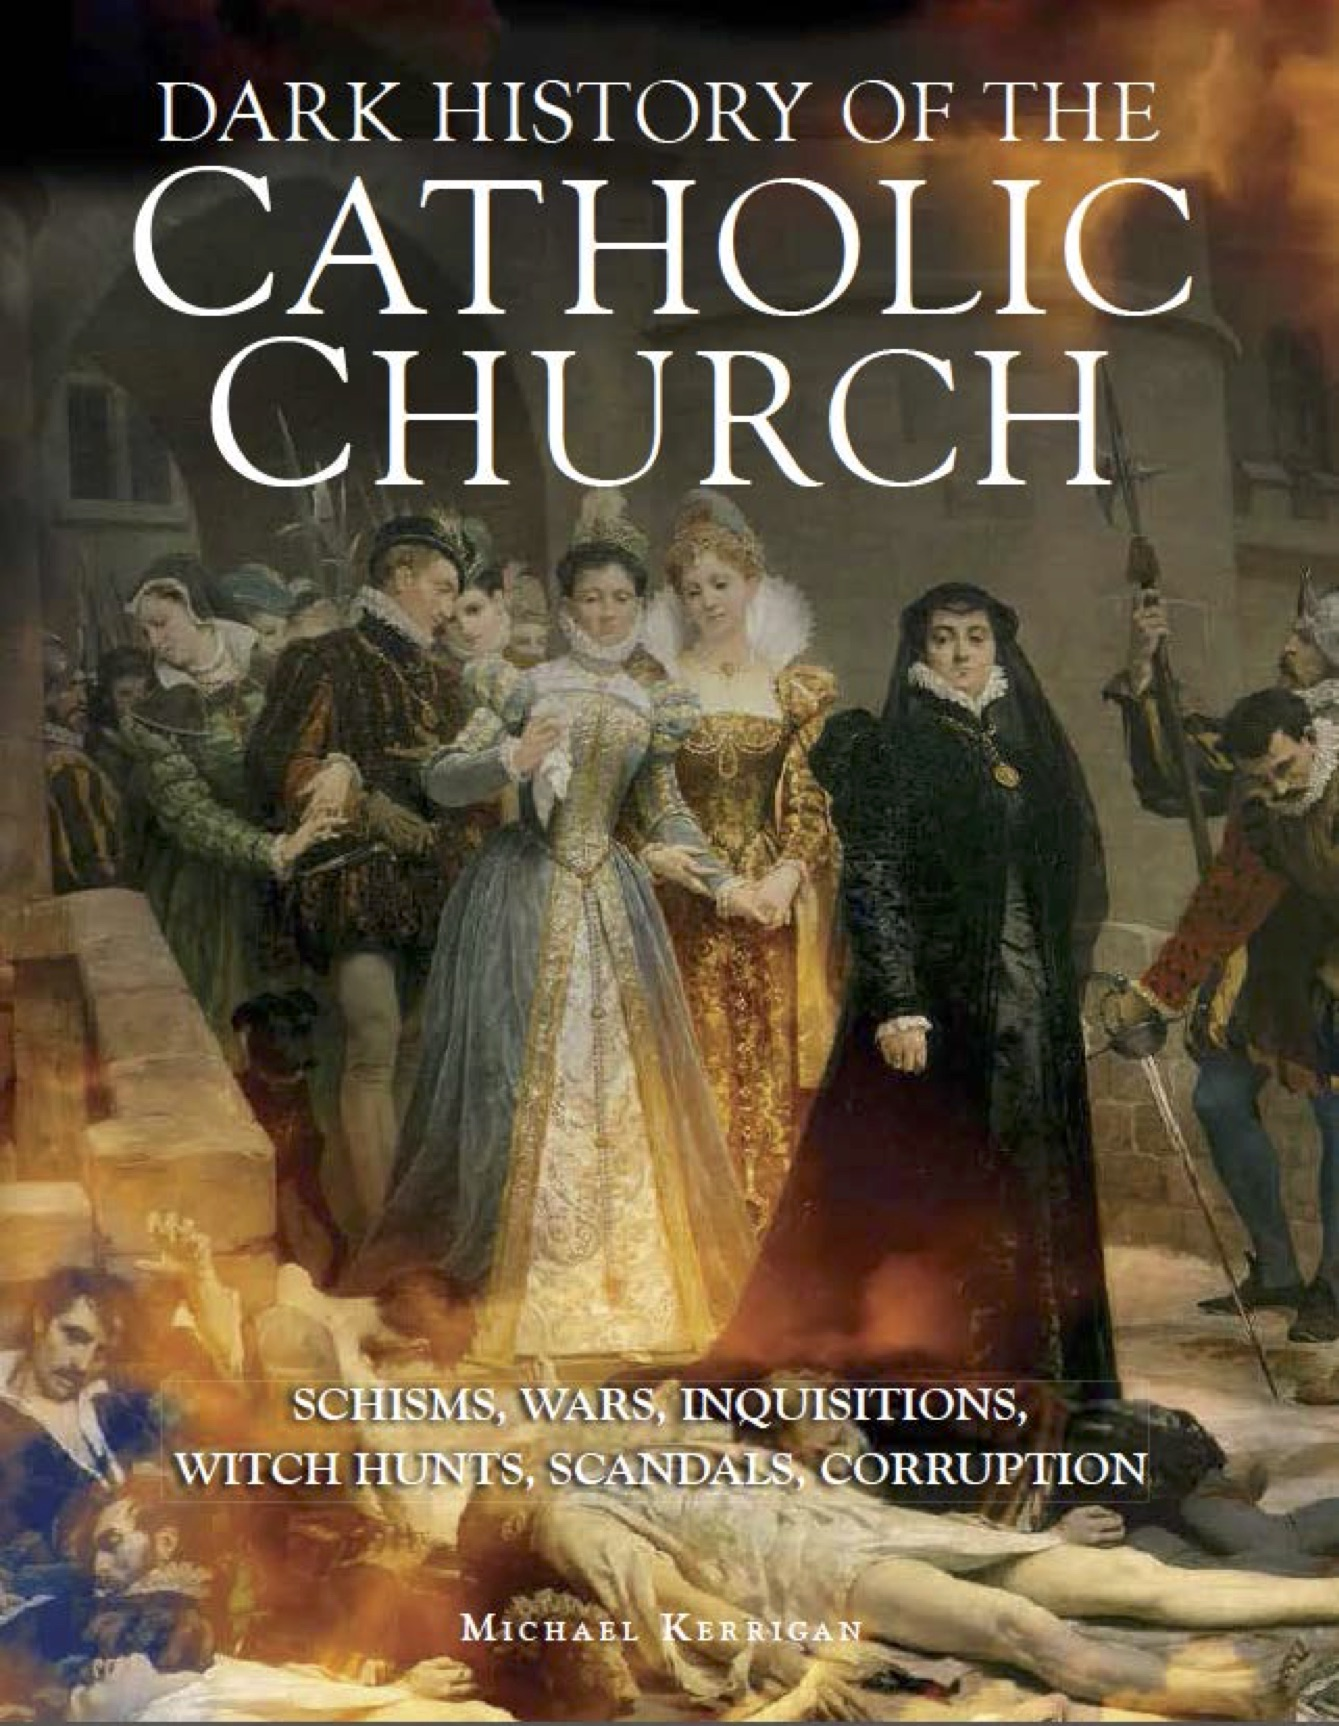 Dark History of the Catholic Church